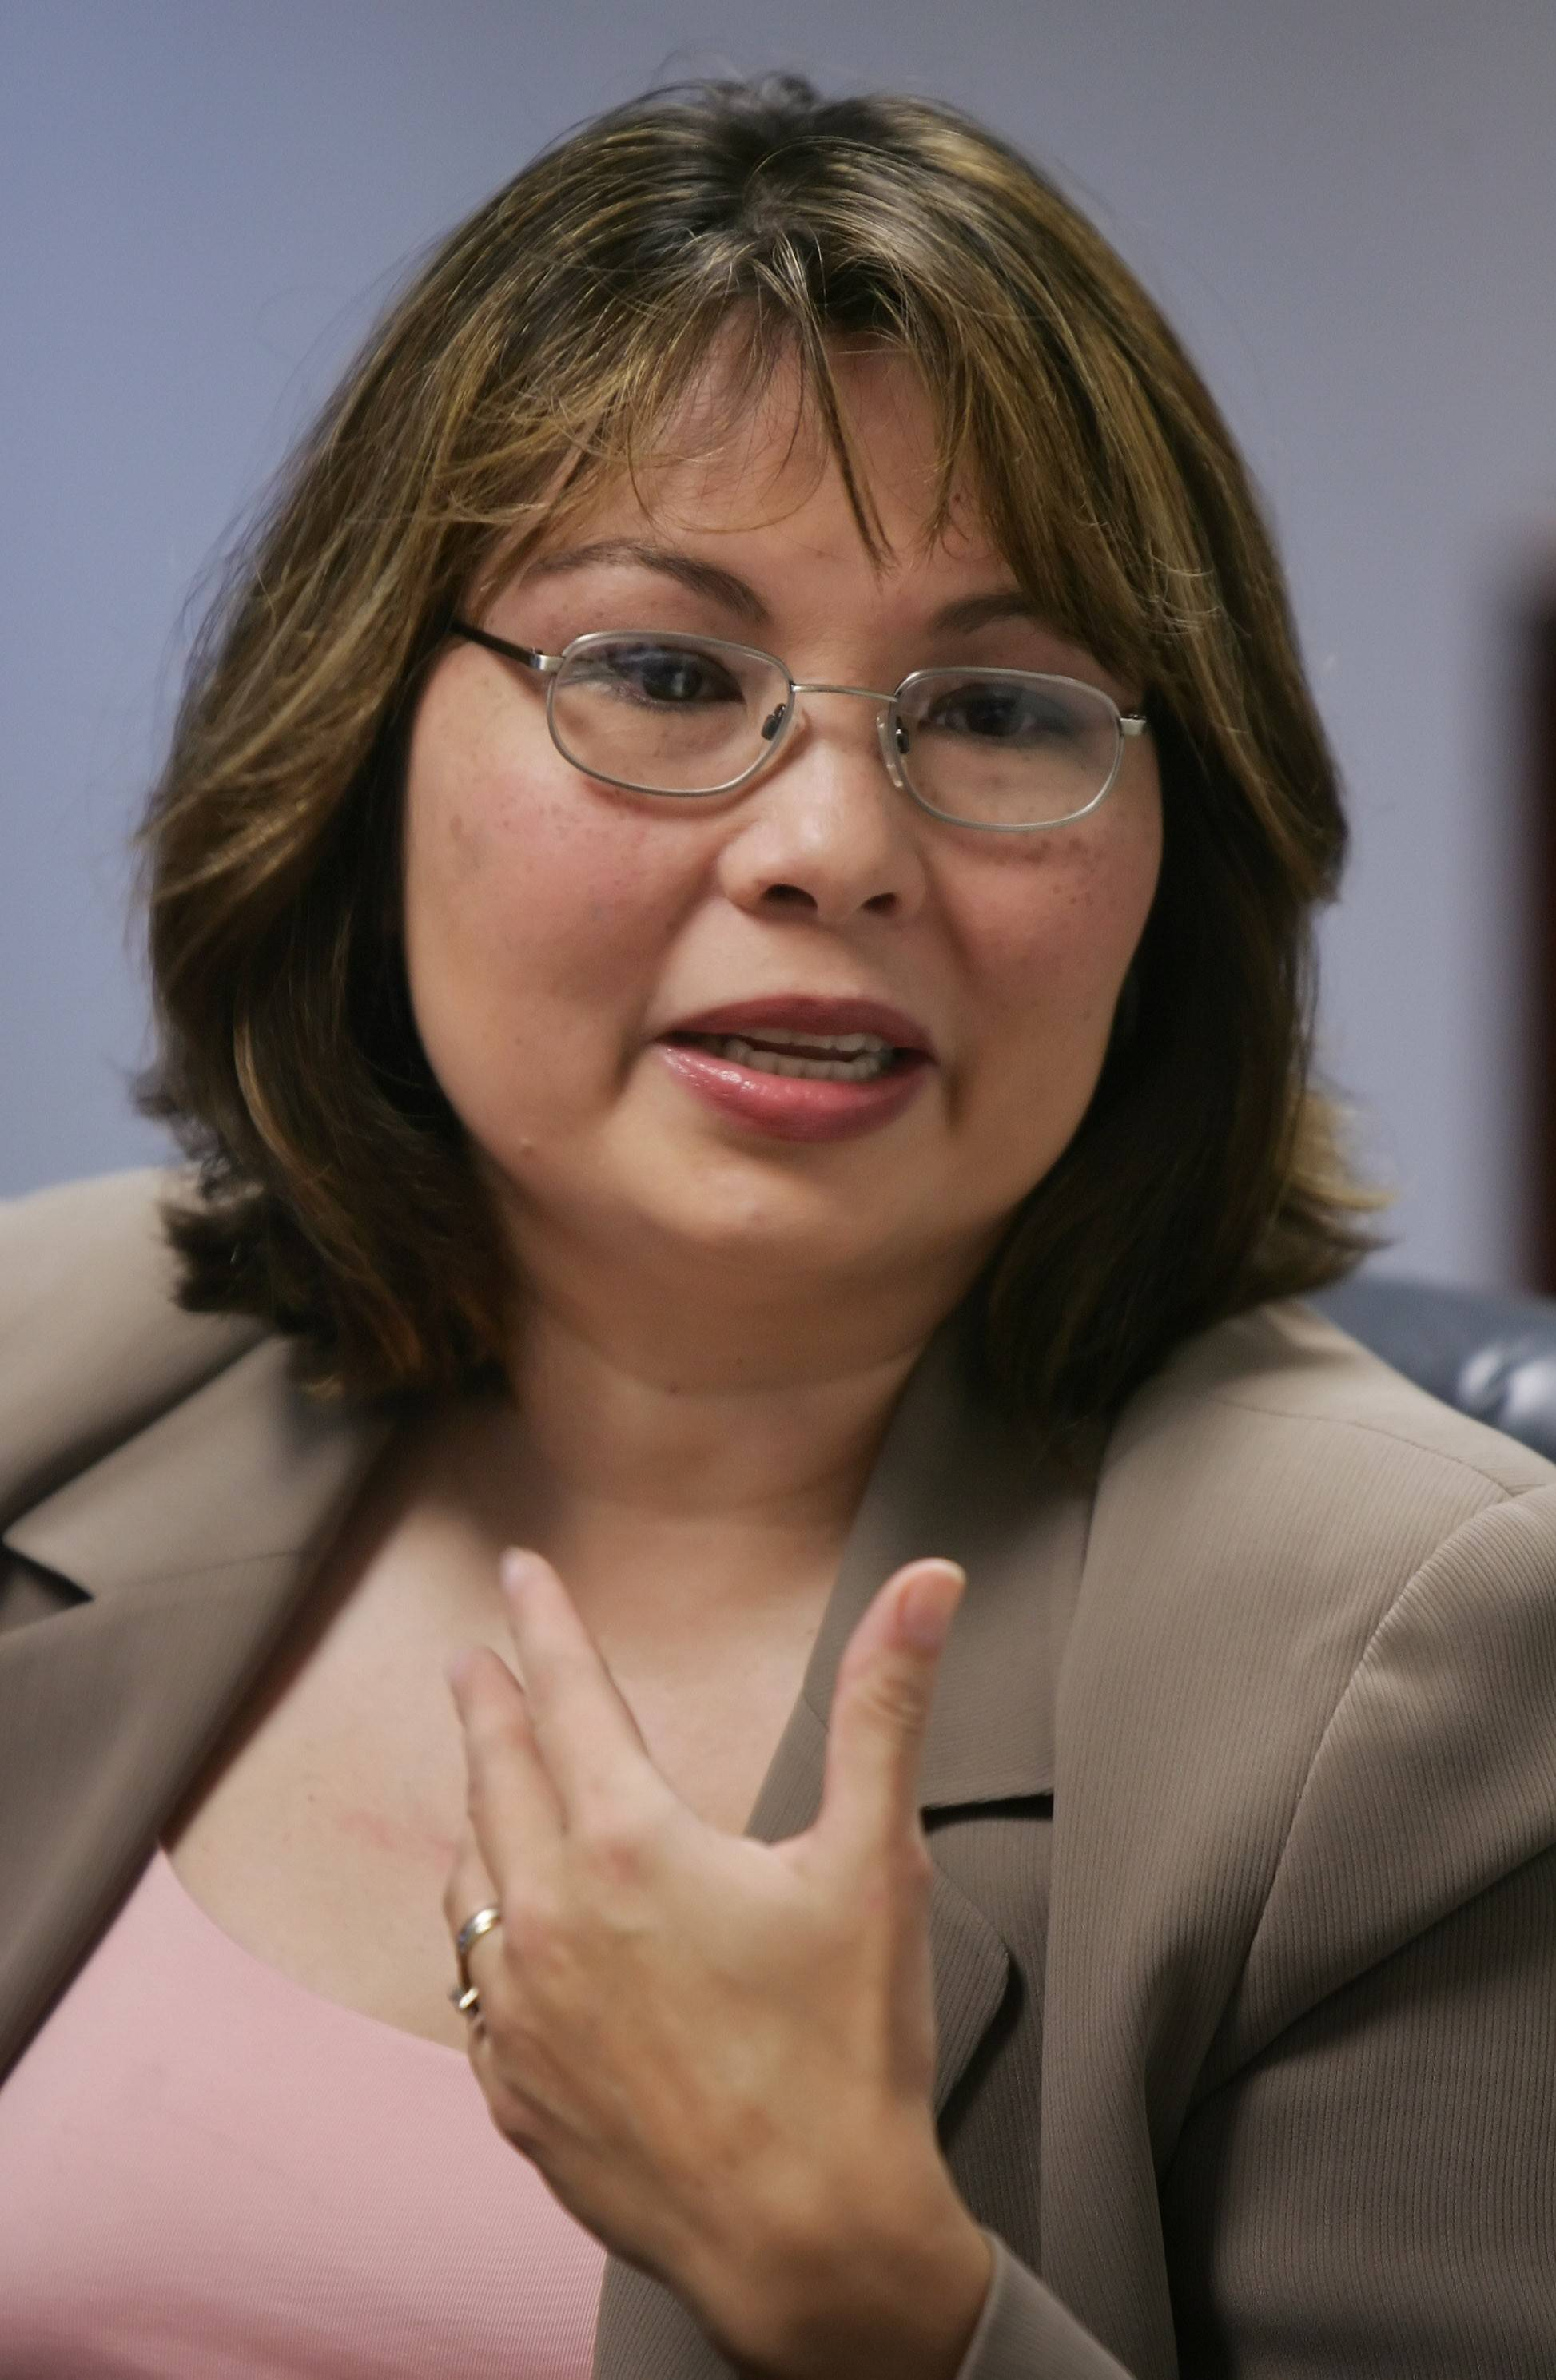 Duckworth returns pay to reflect sequestration cuts